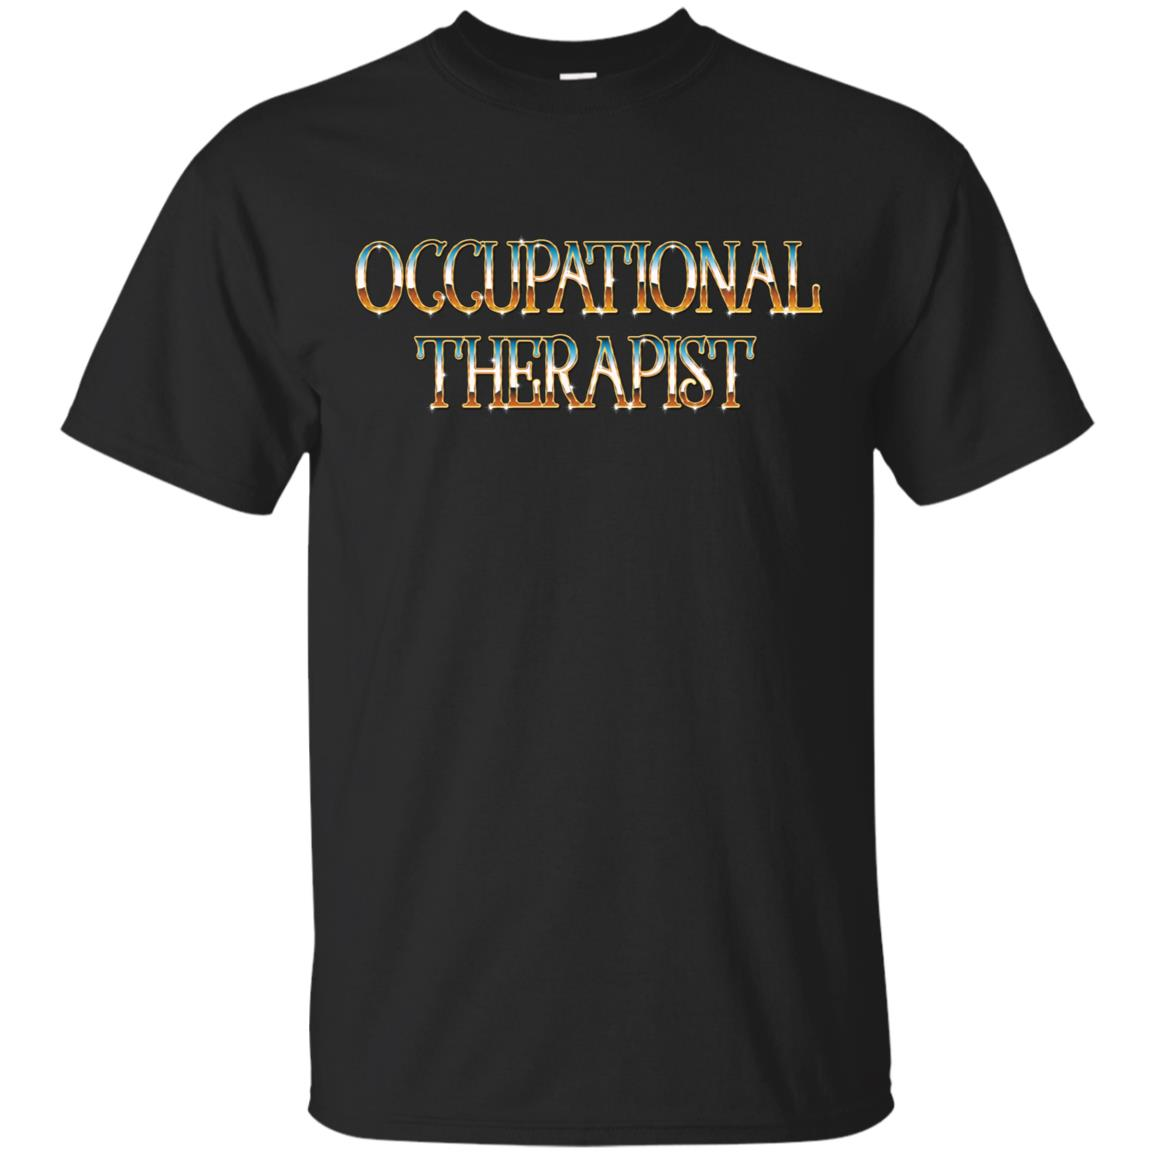 Occupational therapist career Unisex Short Sleeve